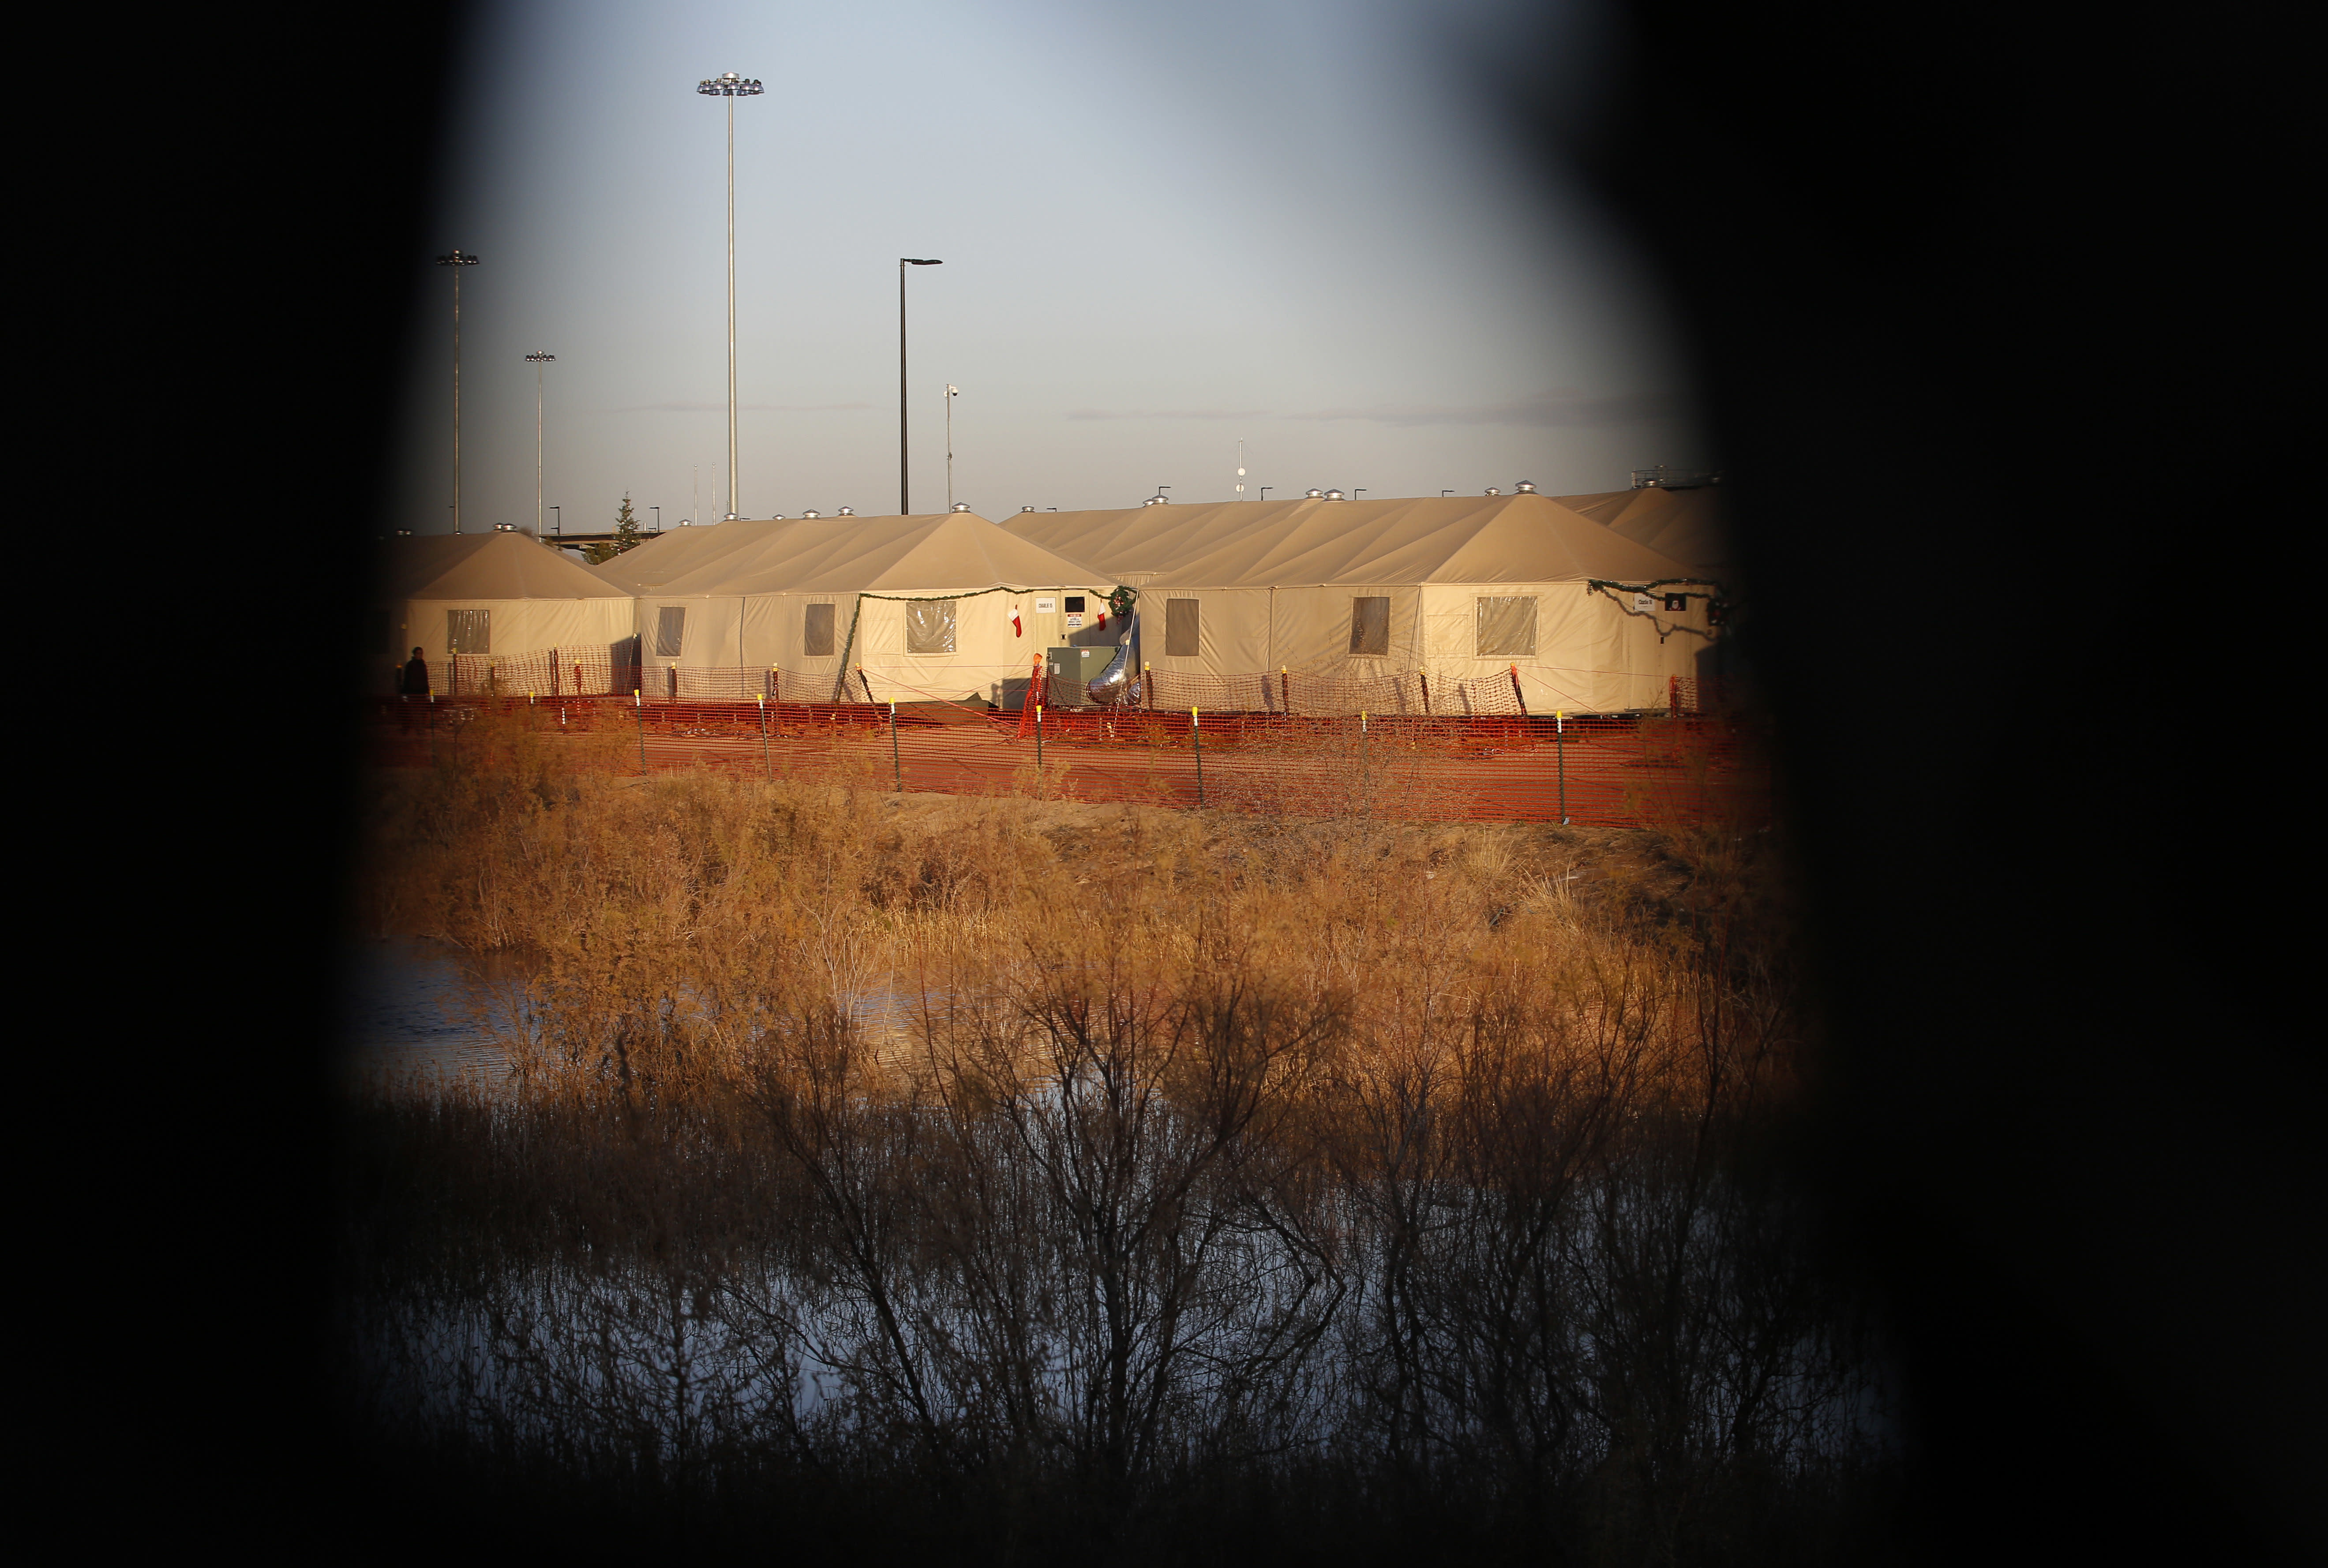 File-This Dec. 13, 2018, file photo shows tents through a hole in the tarp that covers the fence of the Tornillo detention camp for migrant teens in Tornillo, Texas. The nonprofit group running what was once the nation's largest detention camp for migrant children confirmed it is closing down the facility and the last kids left on Friday, Jan. 11, 2019. (AP Photo/Andres Leighton, File)